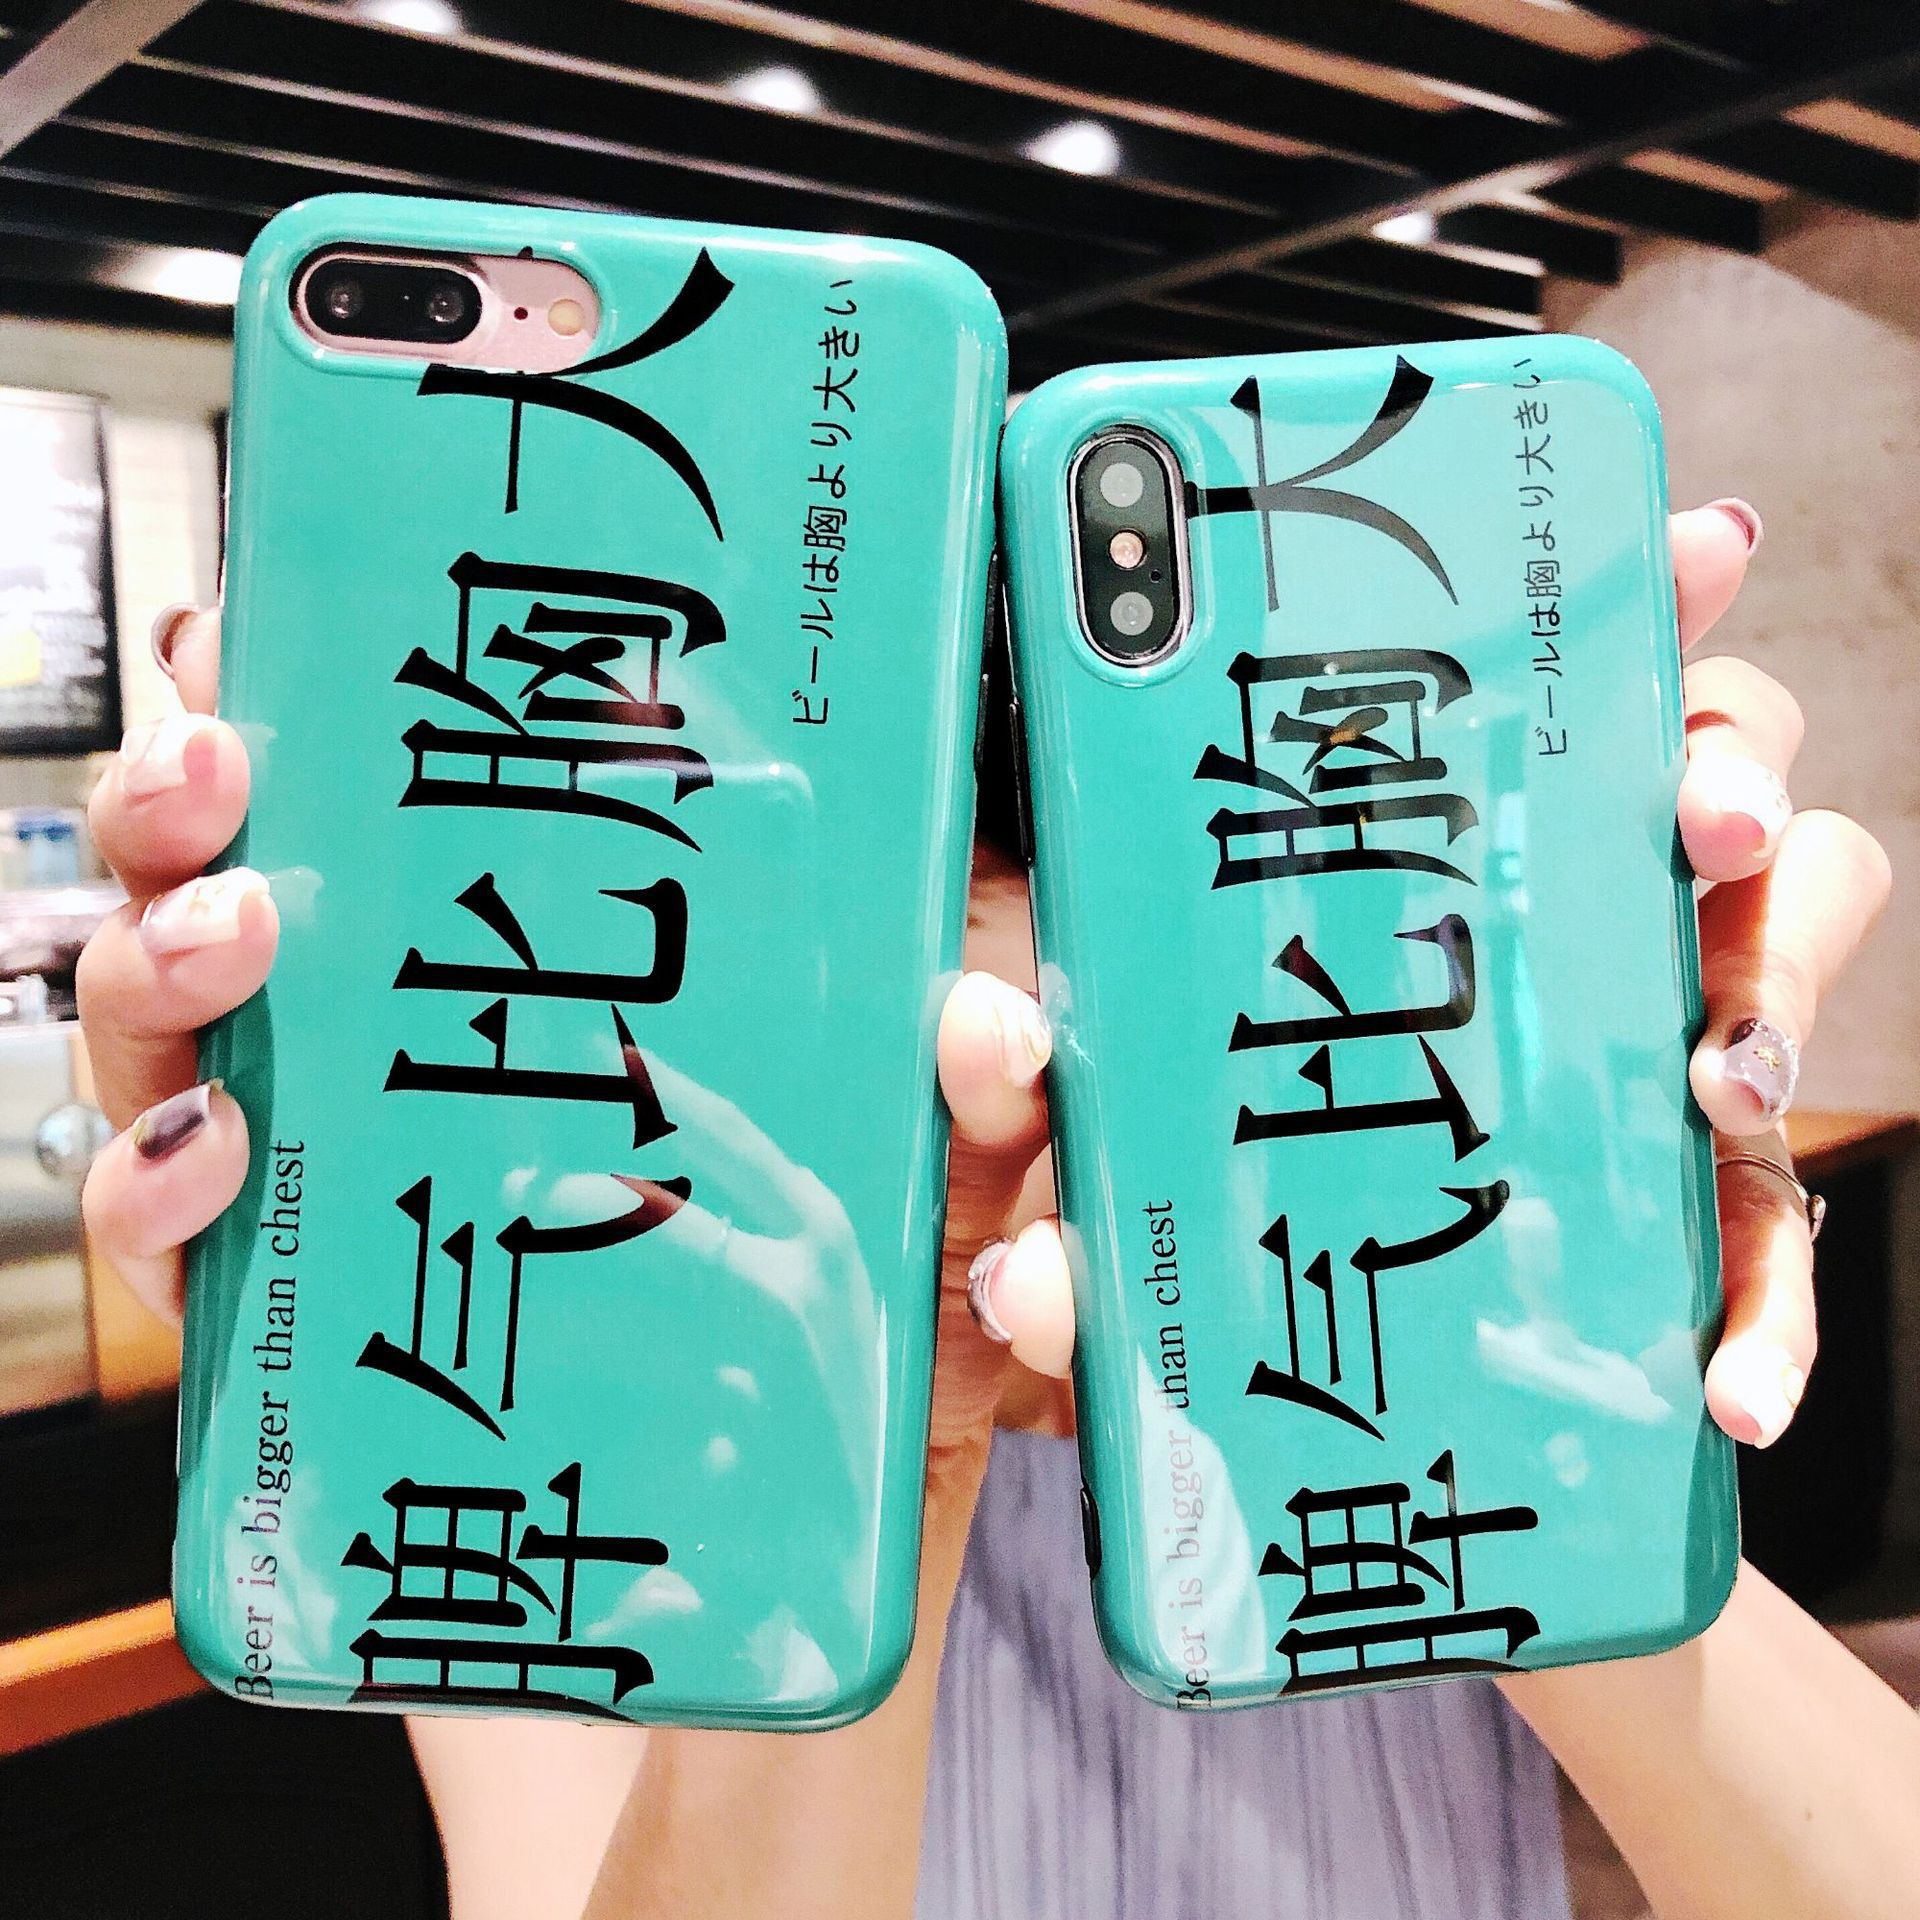 Glossy iPhoneX Mobile Shell Creative Temper Than Big Apple 6splus Silicone IMD7/8p Cover Tide